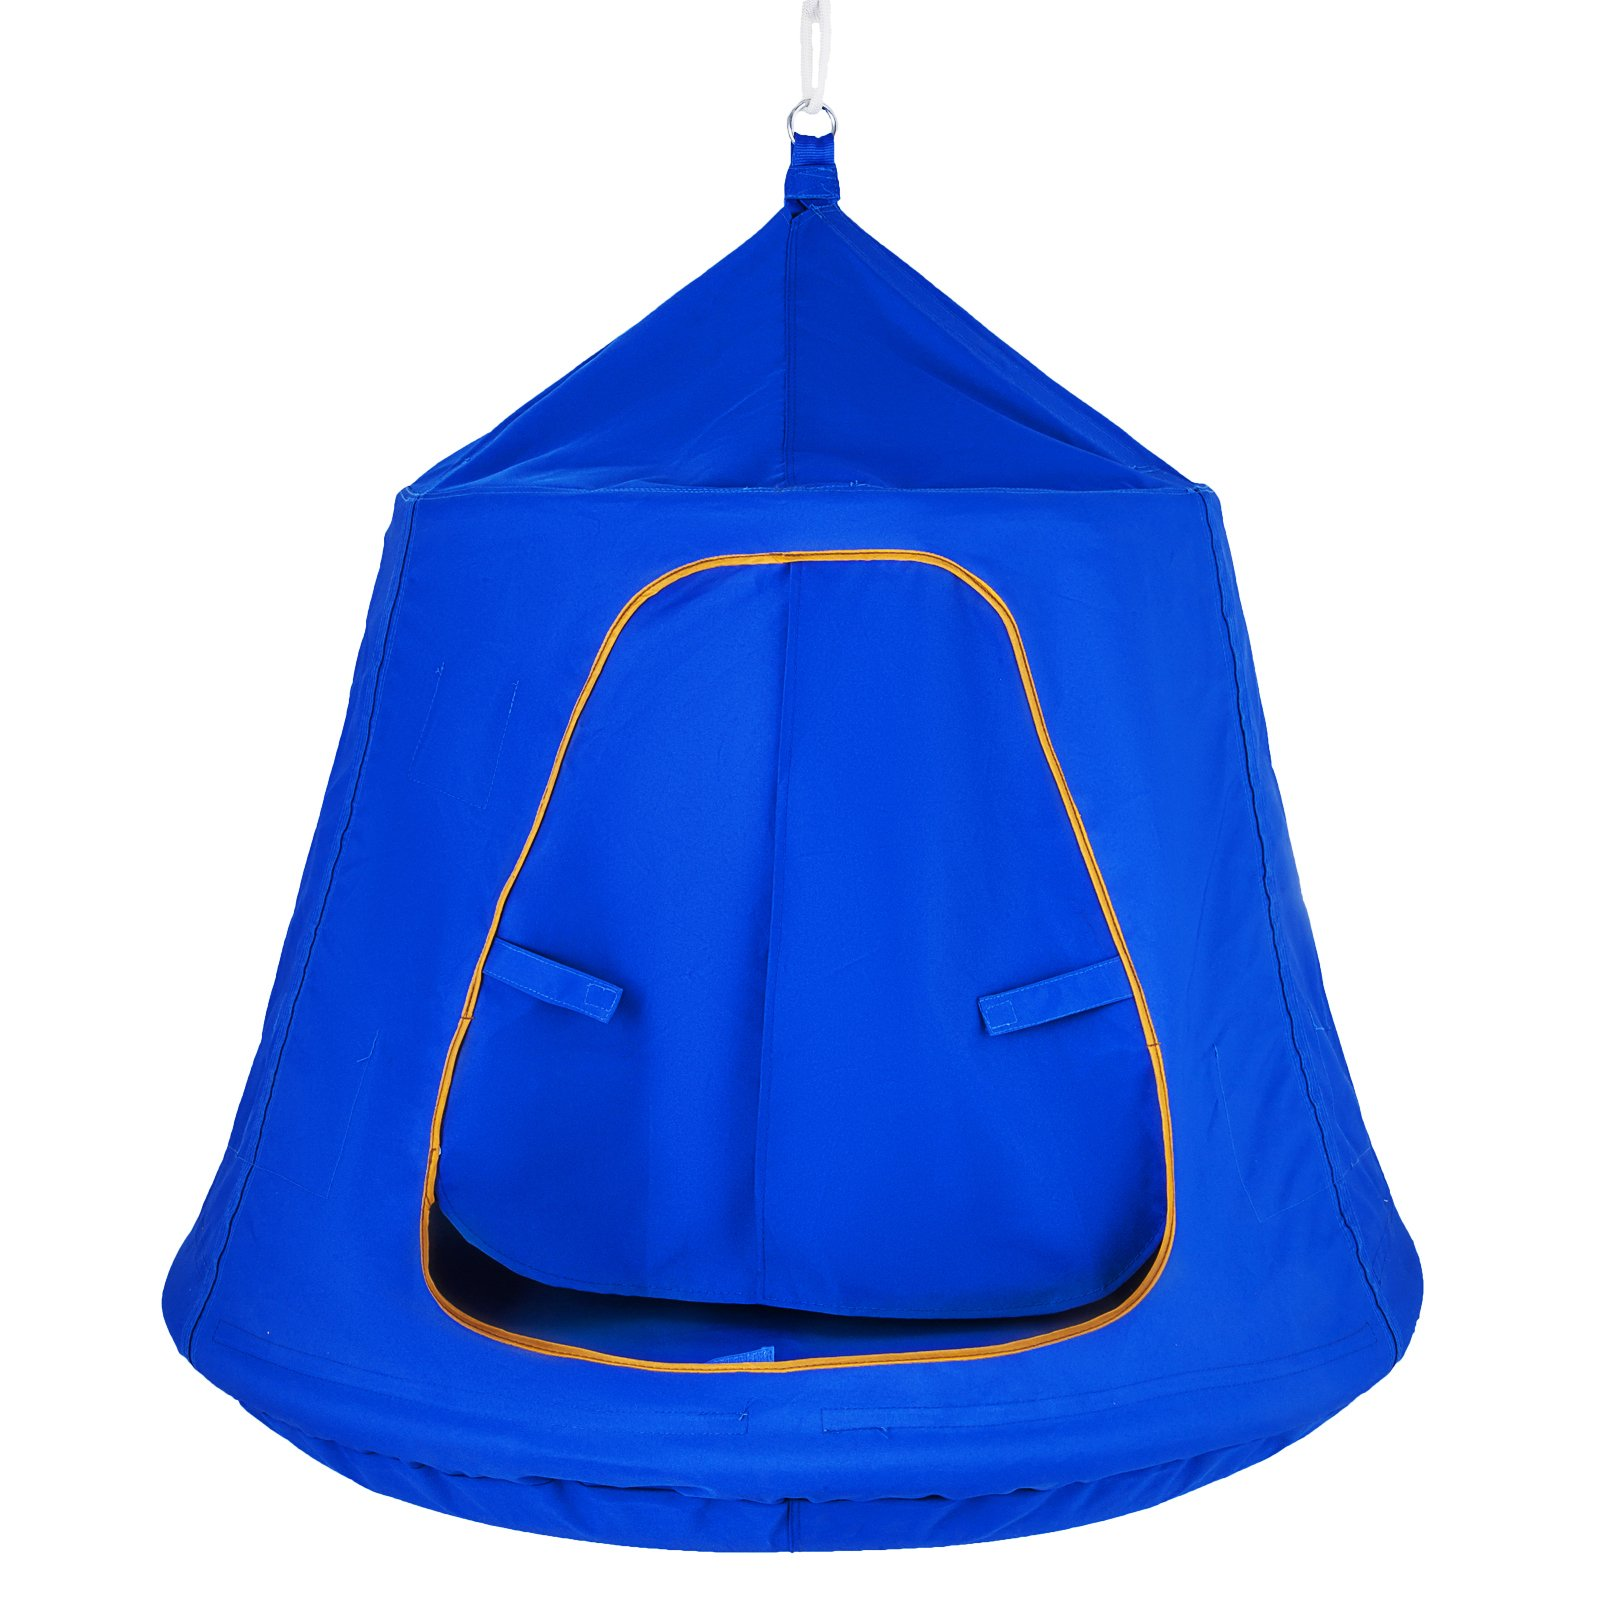 Mophorn Hanging Tree Tent 45 diam x 54 H Hanging Tent Swing Tent Waterproof Hanging Tree&Ceiling Hammock Tent Green Kids Outdoor Tents Playhouses (Blue) by Mophorn (Image #6)